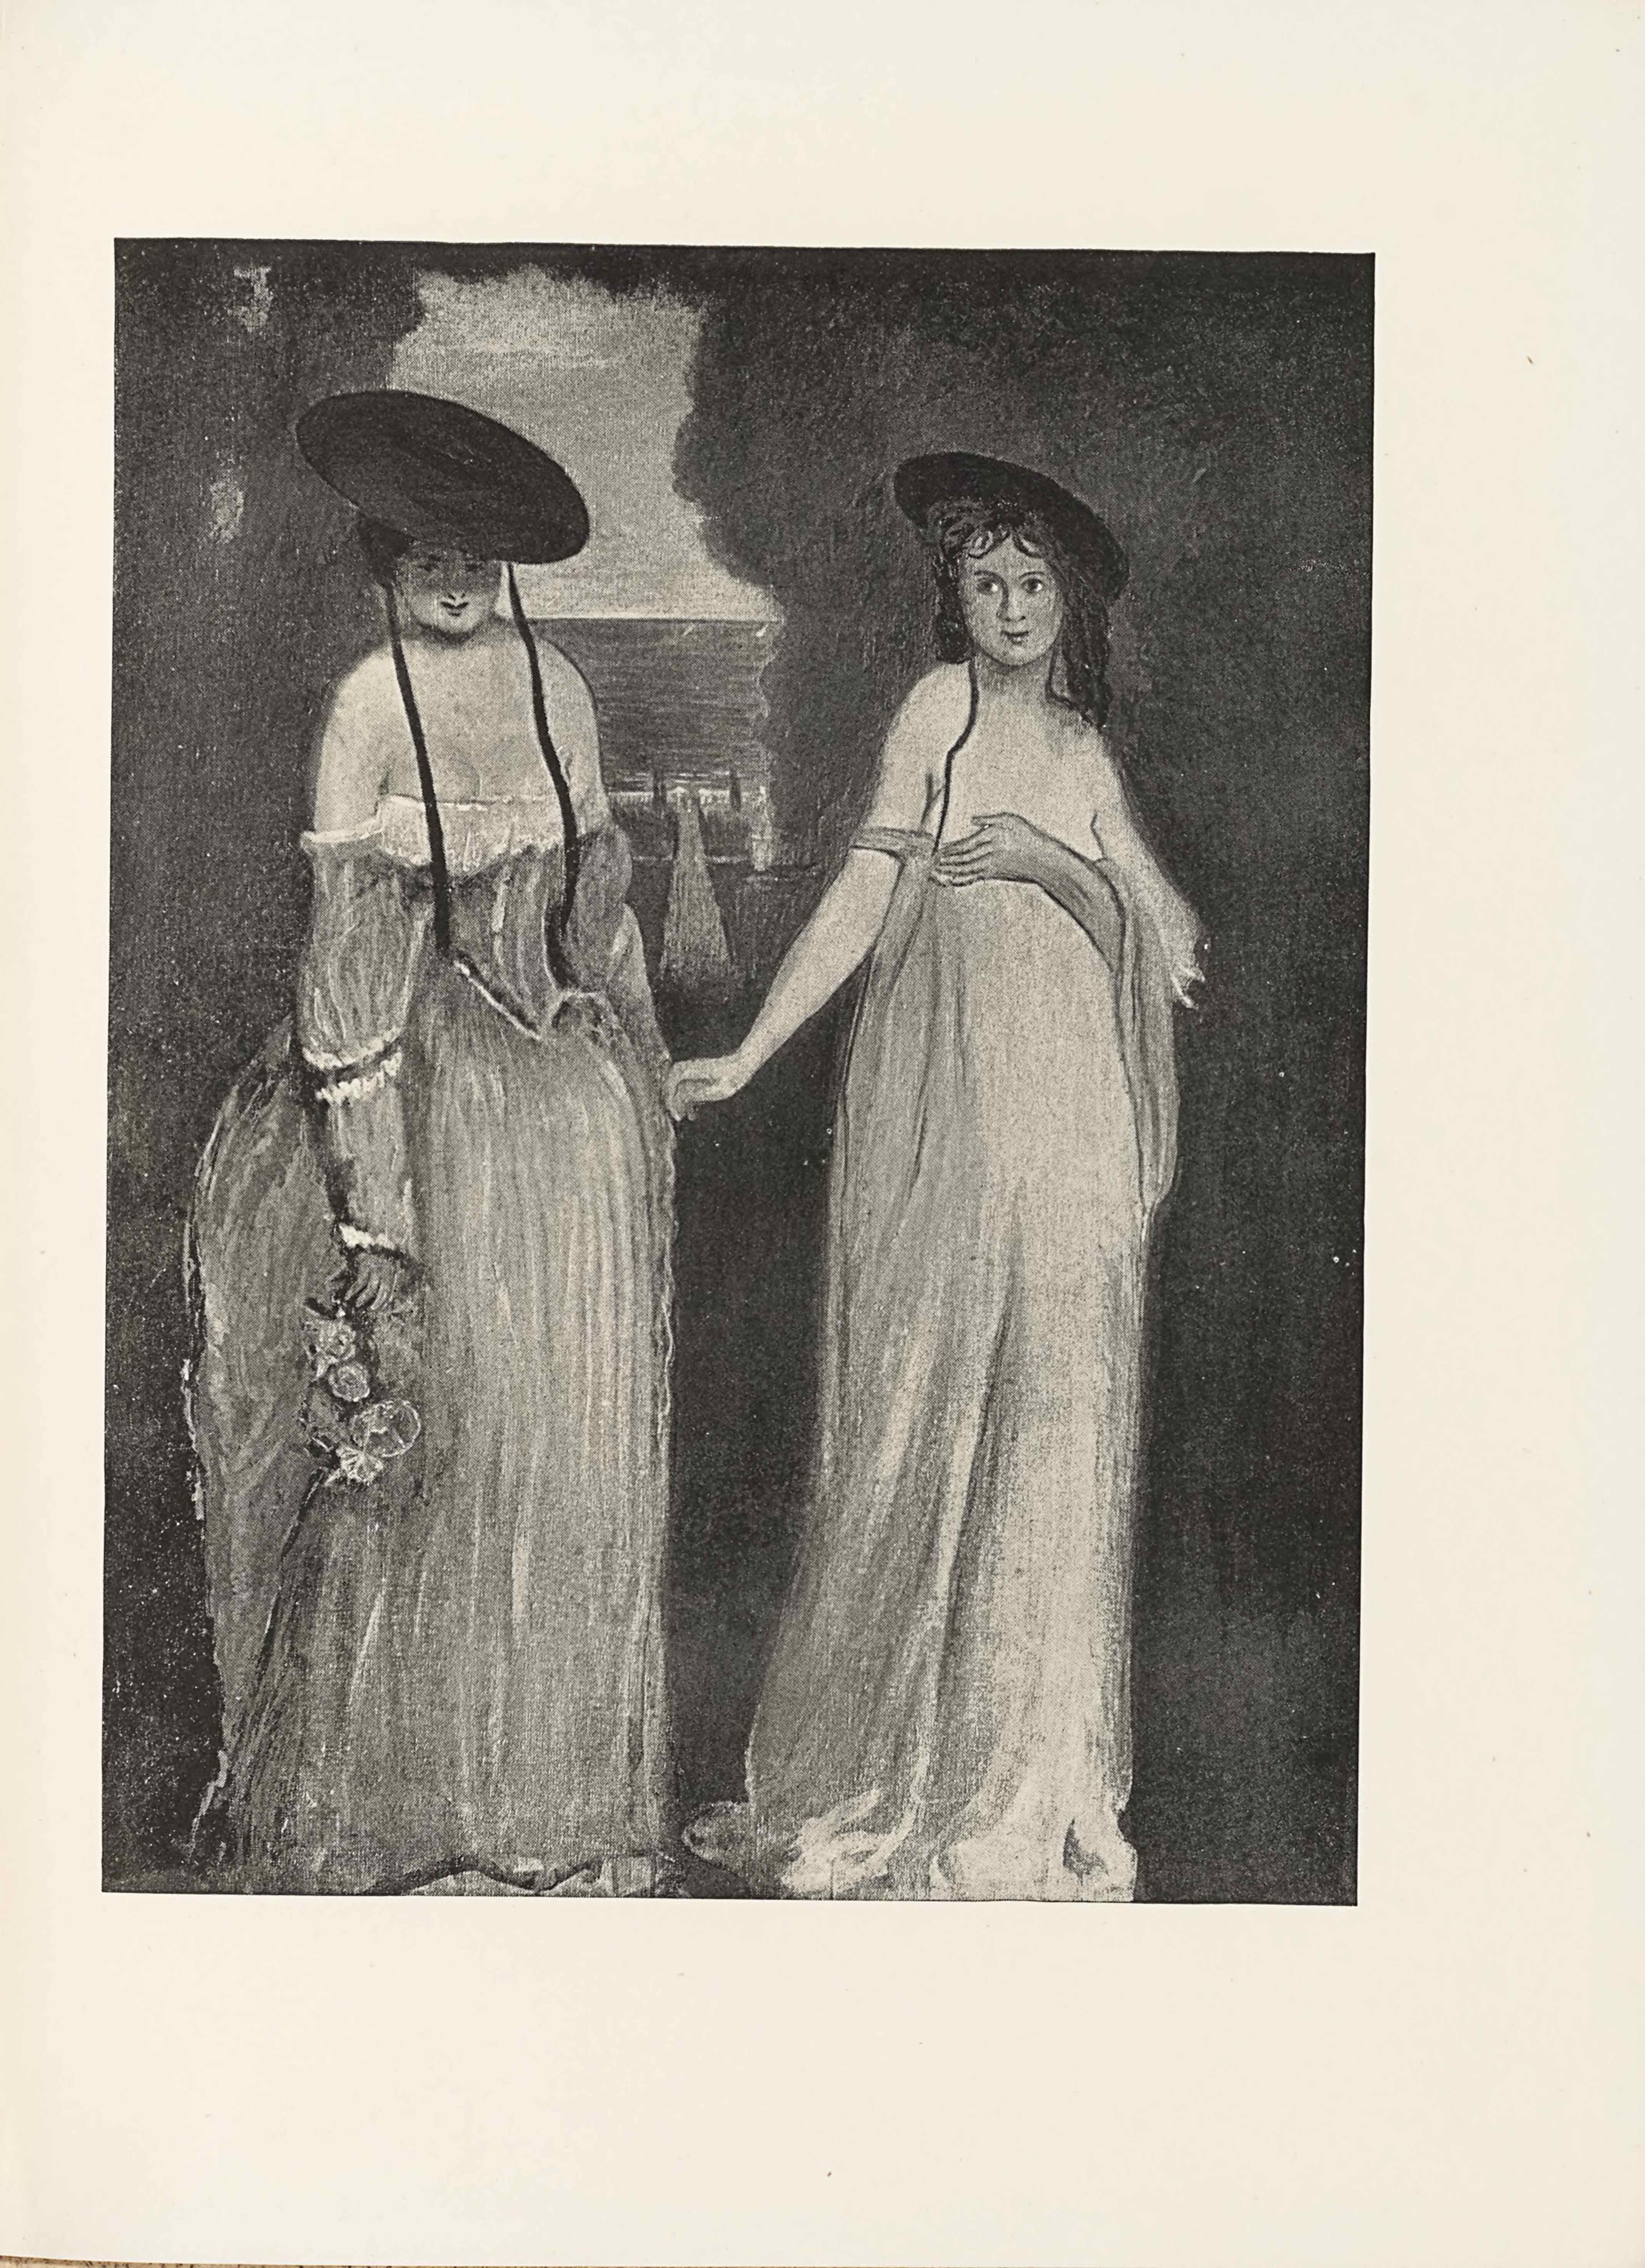 The halftone image is in portrait orientation. The image shows two young women or girls standing in an outdoor scene, taking up almost the whole height of the picture plane. The woman on the left side is standing turned slightly to the right. She is wearing a long gown that has a very low cut and off-the-shoulder style neckline. The dress flows out at the waist into a mid-size skirt. The top of the dress is a corset. The shoulderless sleeves fall down to her wrist and have a single horizontal stripe of ruffles. In her right hand is a bouquet of flowers hanging upside down. Her chest is bare, apart from the two ribbons hanging down from a wide brimmed hat she wears slanted down and casting a shadow over her face. Her hair is pulled back underneath the hat. She has slightly upturned lips. Her eyes stare straight ahead at the viewer. Her left arm is pulled behind her slightly. The other woman, who is on the right side, is standing turned slightly to the right side of the page as well. She is wearing a very loose dress, one that is low-cut and appears to fall below her breasts. There is one off-the-shoulder sleeve wrapped around her right arm, but none appears on her left arm. Her right hand is extended out to the side and seems to reach towards the other woman's left hand. Her left arm is bent up at a ninety degree angle and is holding the dress at the front and covering her breasts. A bit of excess material is draped over top of this left arm and hangs down her front. She also has on a brimmed hat, a slightly smaller one than the other woman's. The hat has two ribbons falling down from it and the right ribbon falls over her chest while the other is tucked behind her left shoulder. Her slightly wavy hair falls down behind her shoulders. In the middle of the two women and backgrounded is a sailboat. This boat floats in the water that extends out to the skyline in the background. There is only a small opening to see the boat and the water behind it though, for the rest of the background is filled with a dark hedge.